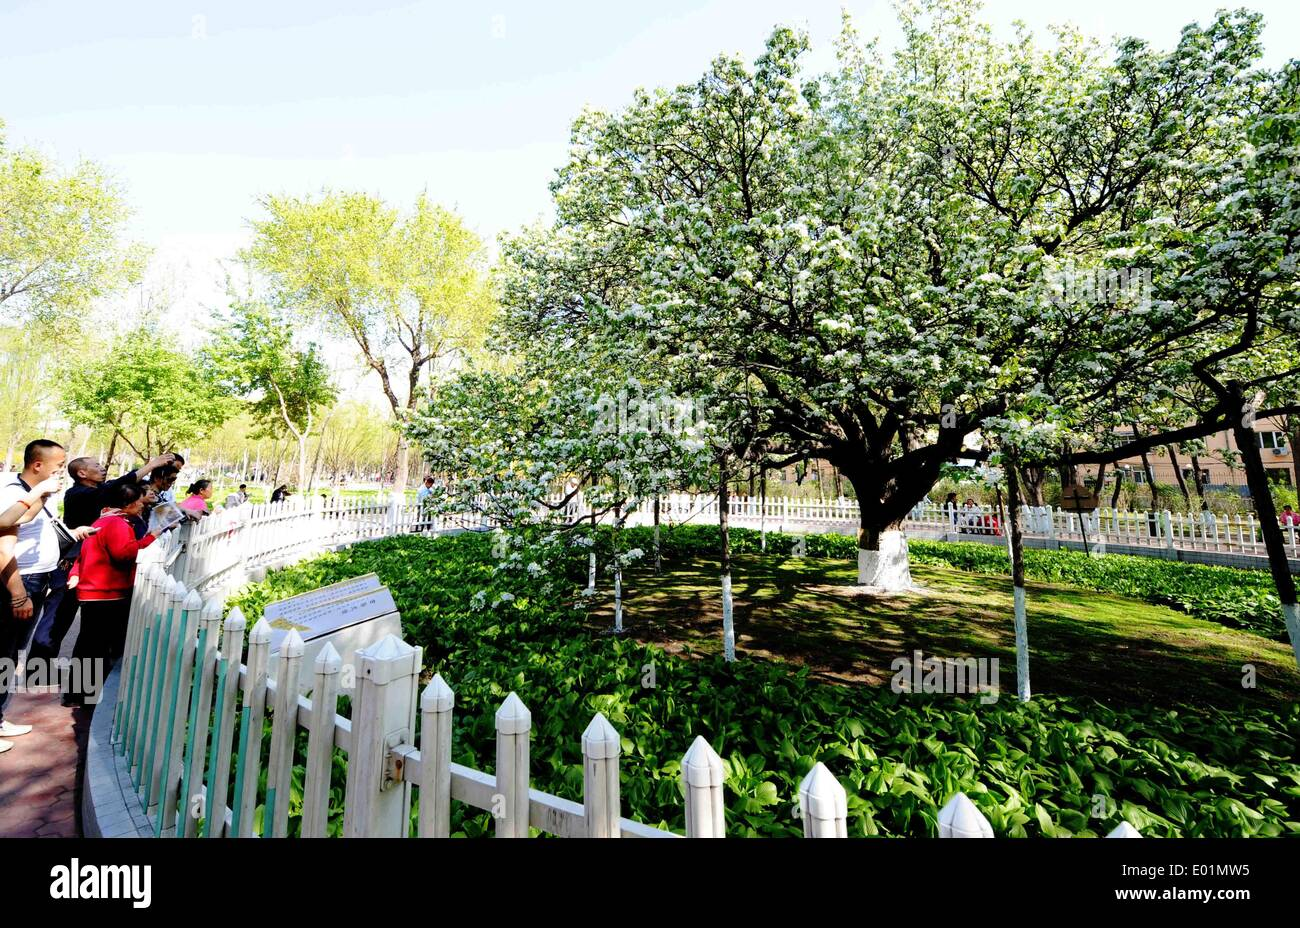 Harbin, China's Heilongjiang Province. 29th Apr, 2014. Citizens take photos of a blossoming pear tree, which is over 120 years old, in Harbin, capital of northeast China's Heilongjiang Province, April 29, 2014. © Wang Jianwei/Xinhua/Alamy Live News - Stock Image